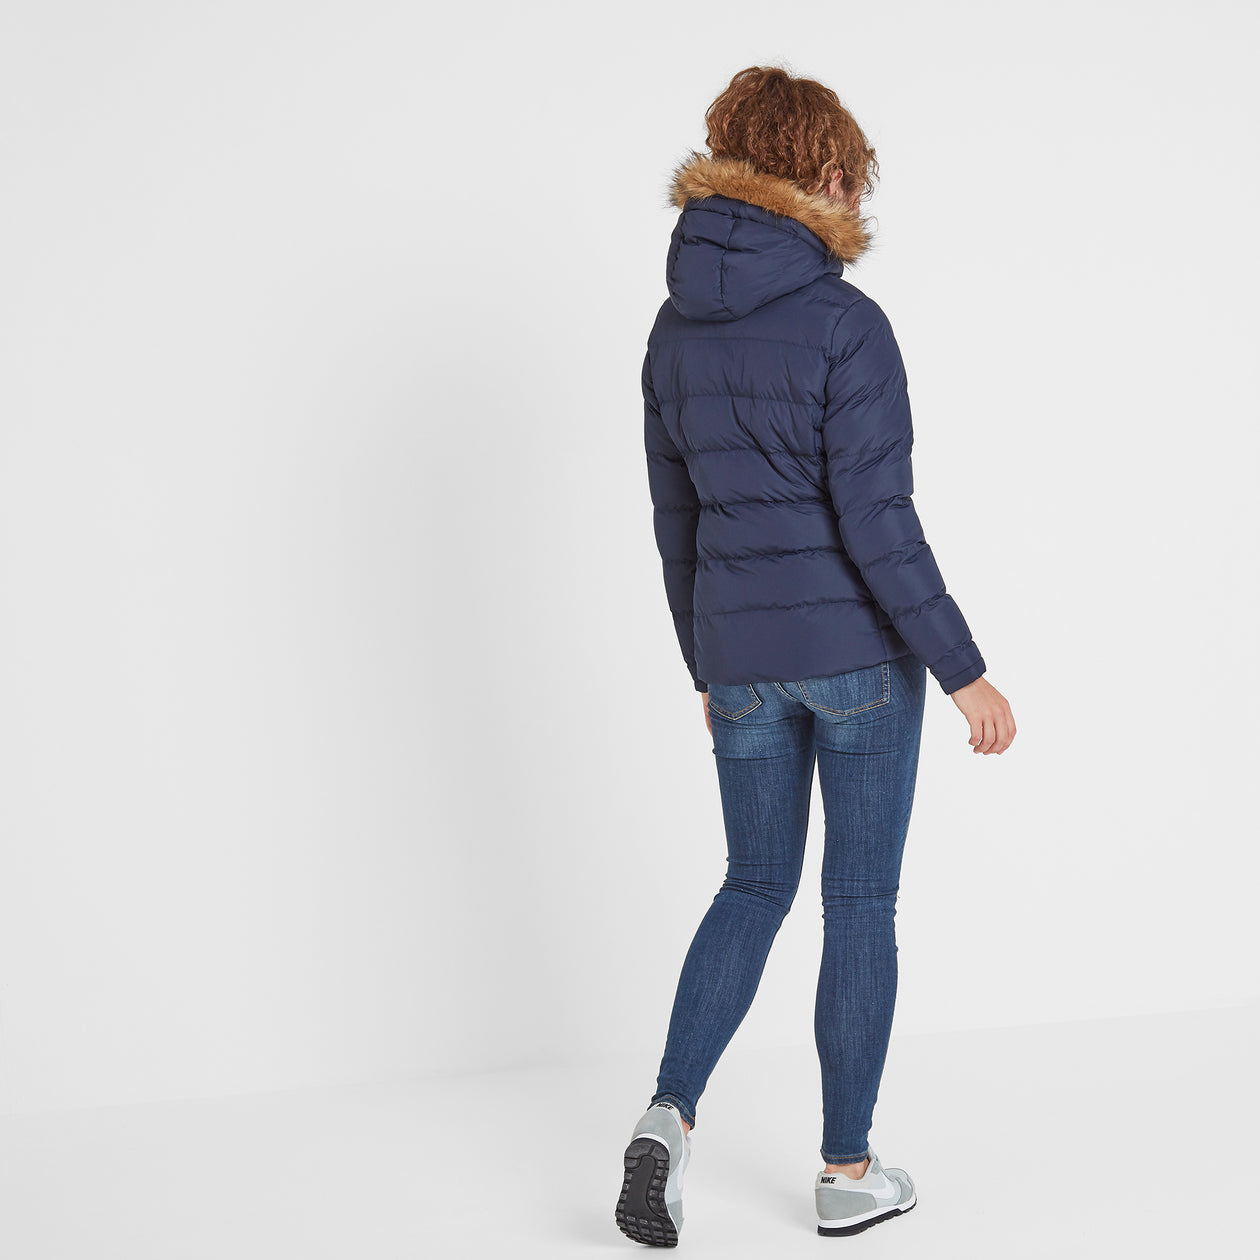 Fernsby Womens Insulated Jacket - Navy image 4